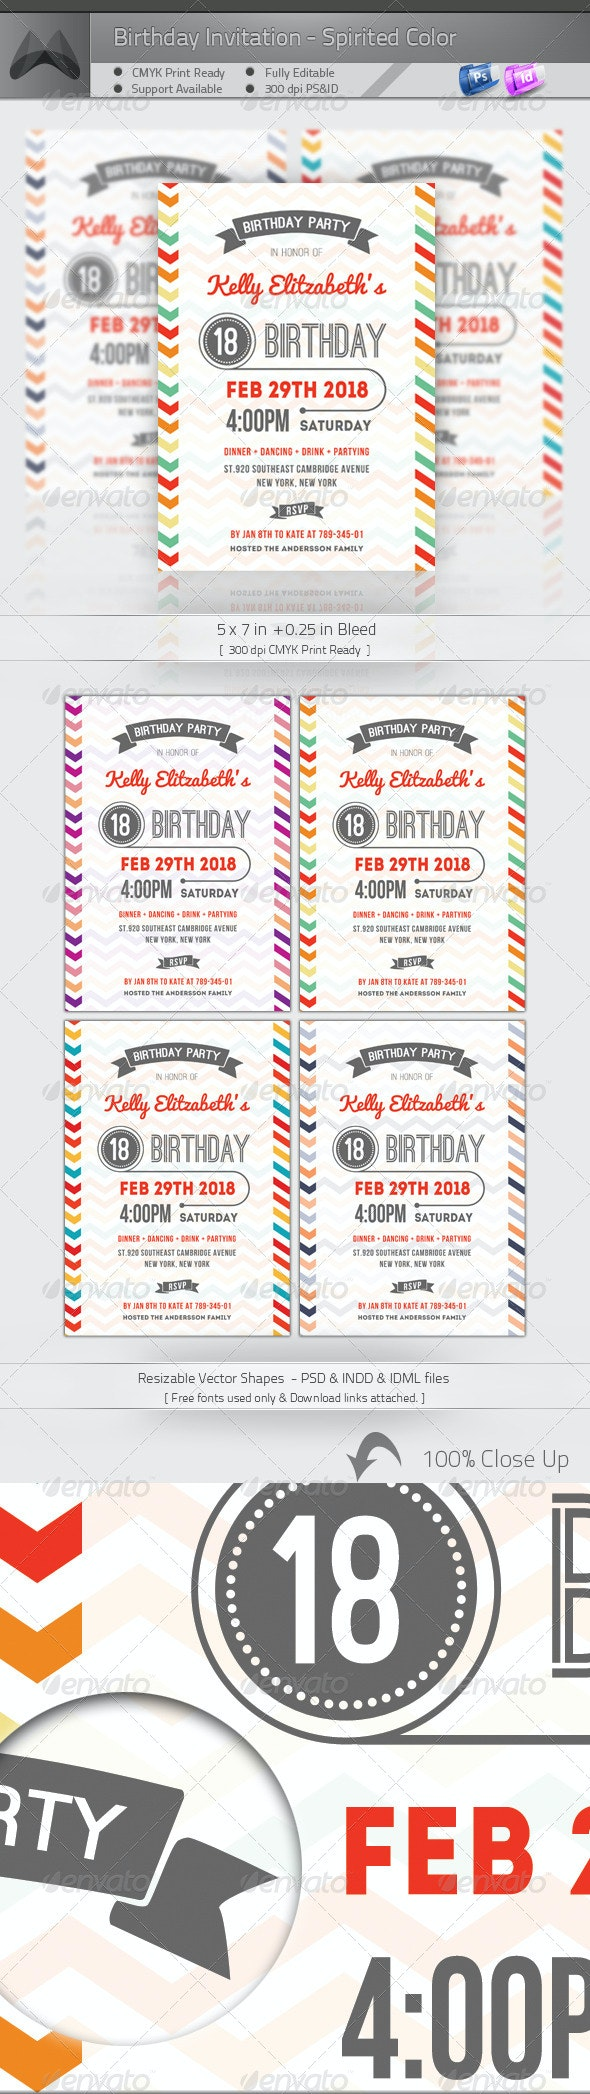 Birthday Invitation - Spirited Color - Invitations Cards & Invites